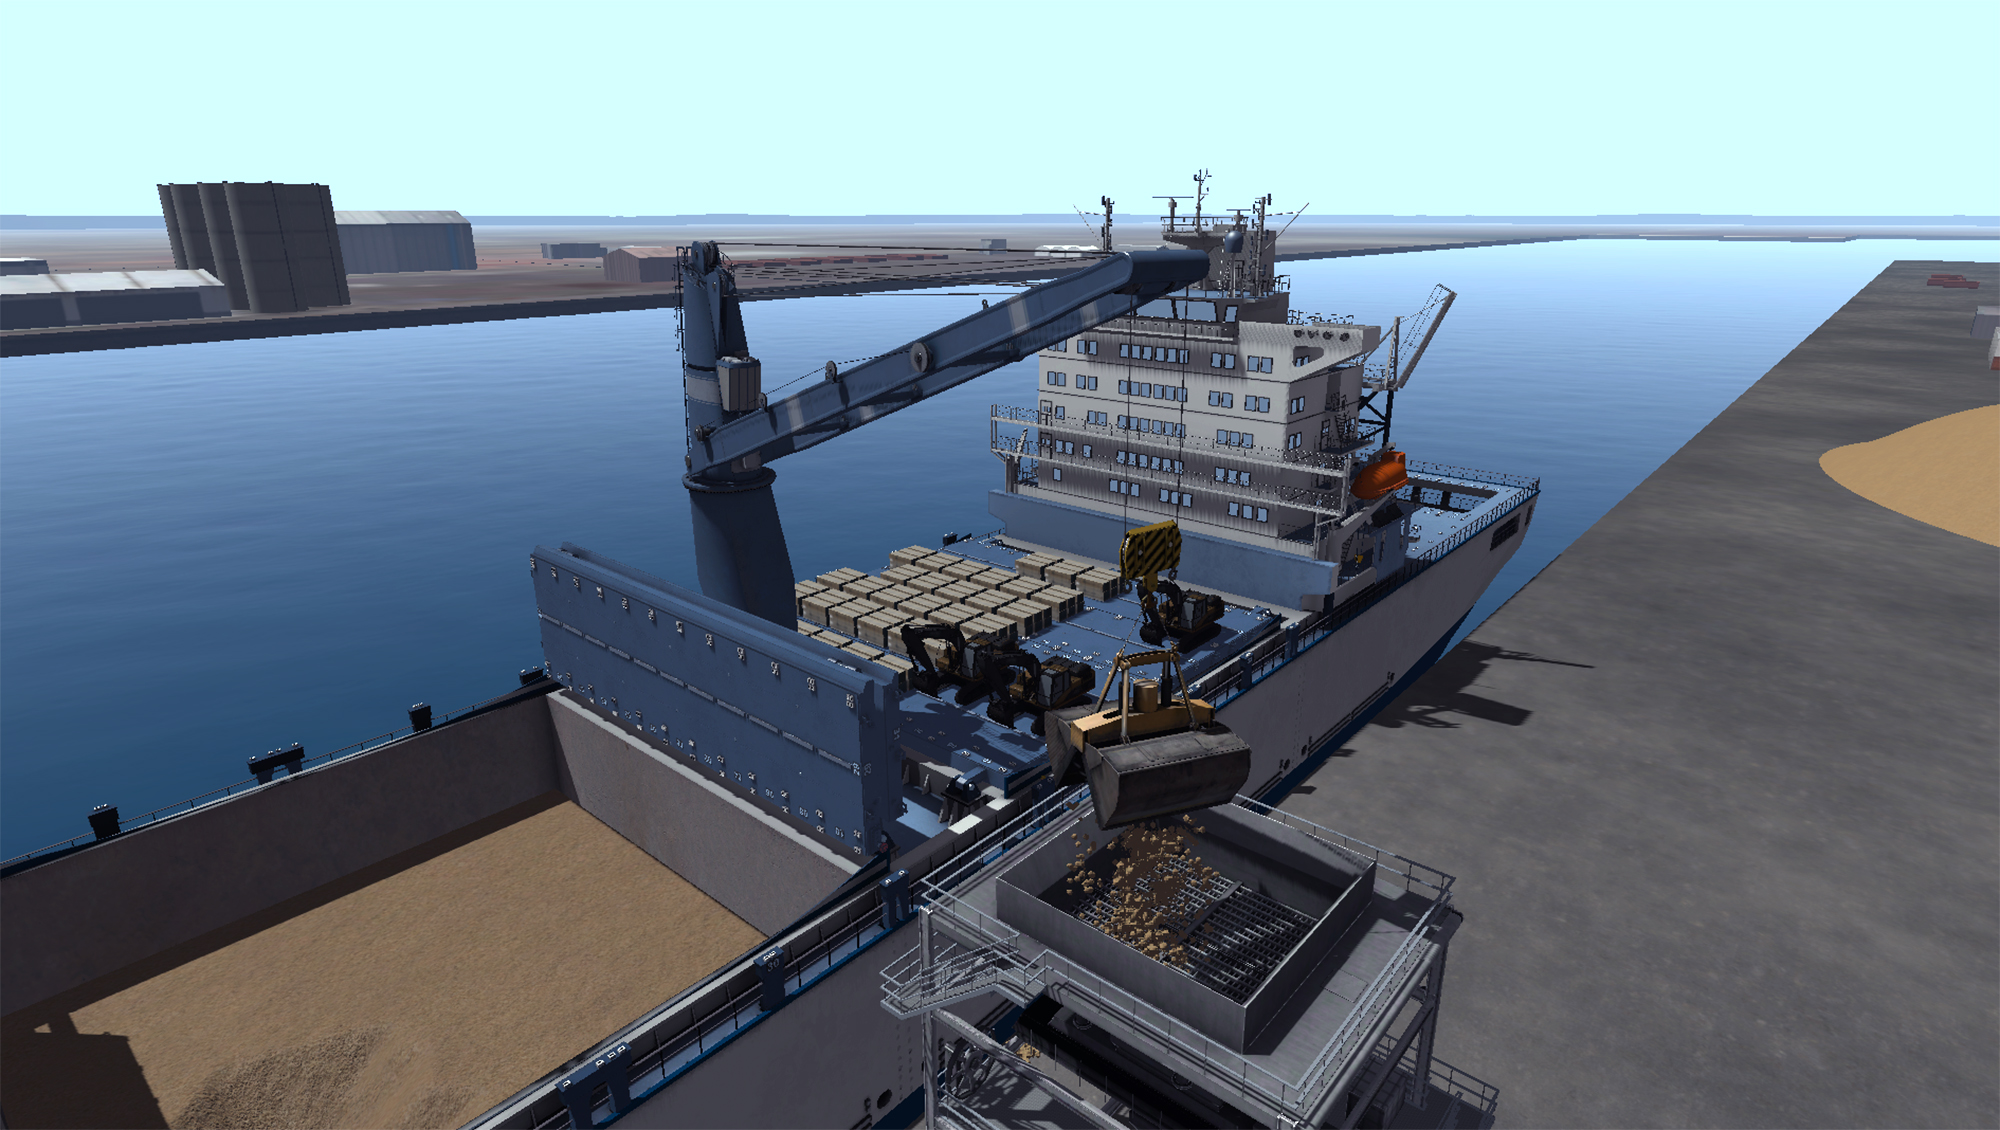 Simulation-based Training Solutions for Yard Equipment in Port Terminals